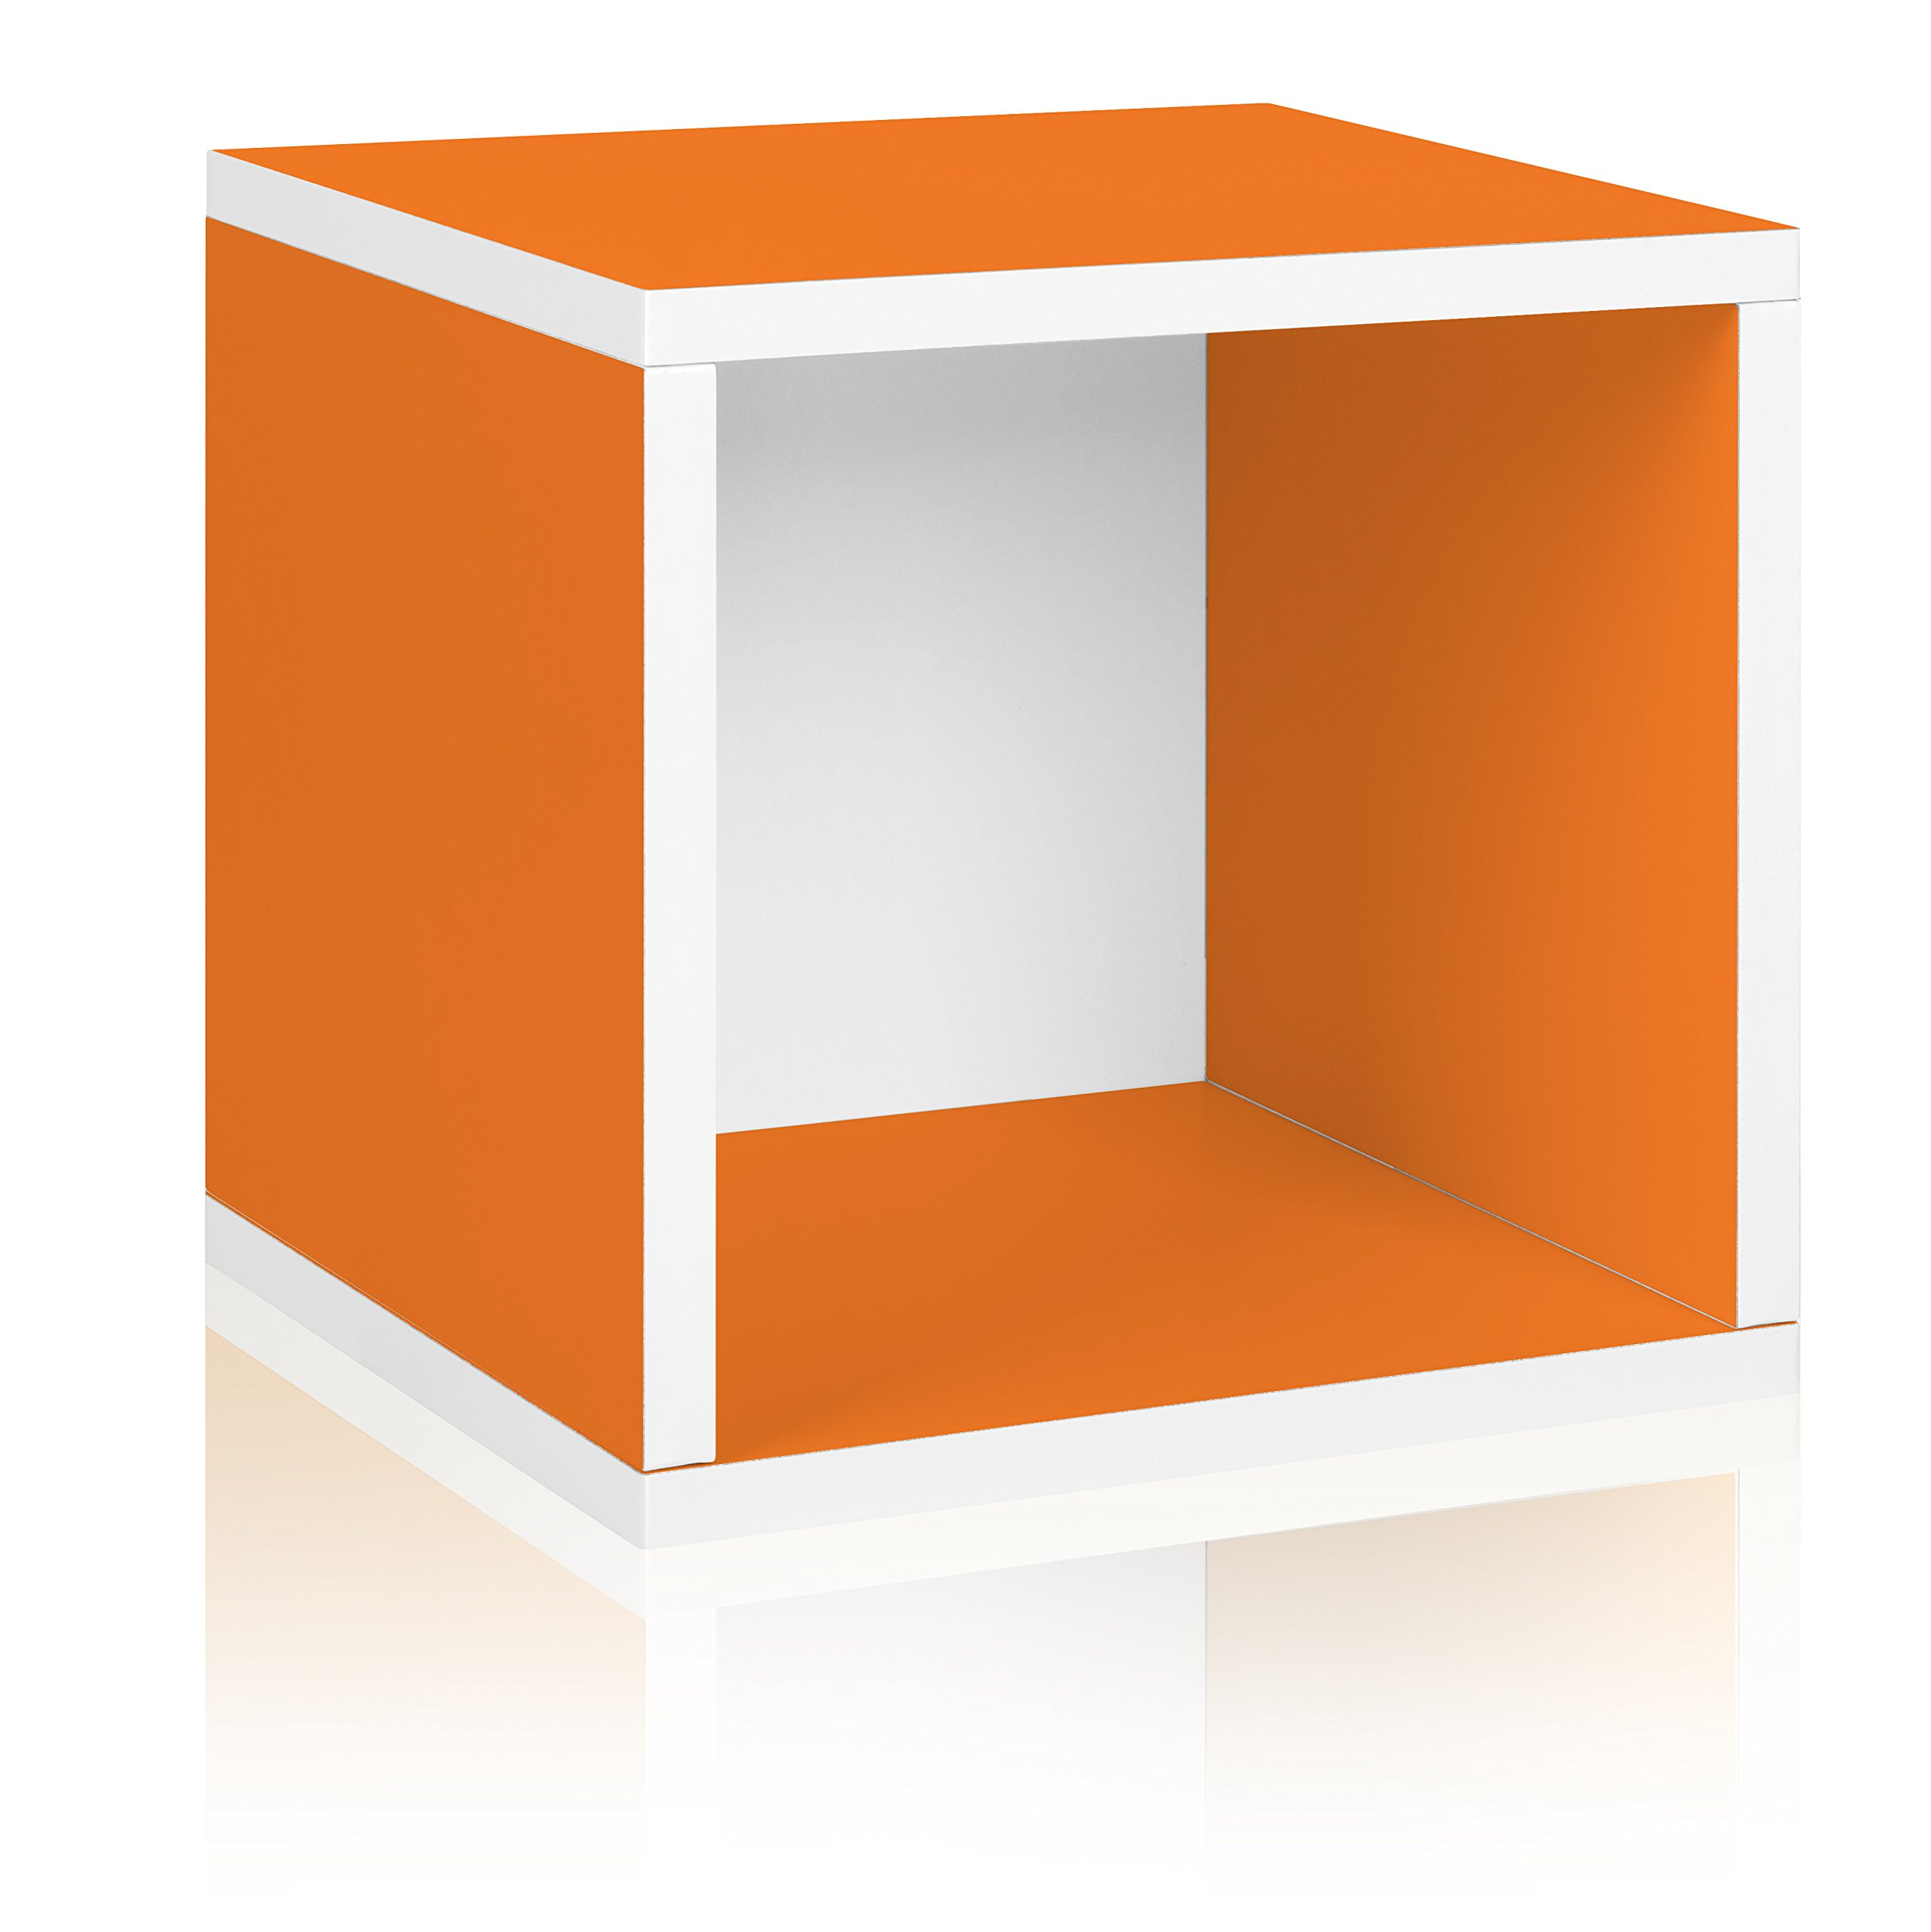 Way Basics Eco Stackable Storage Cube and Cubby Organizer, Orange (made from sustainable non-toxic zBoard paperboard)